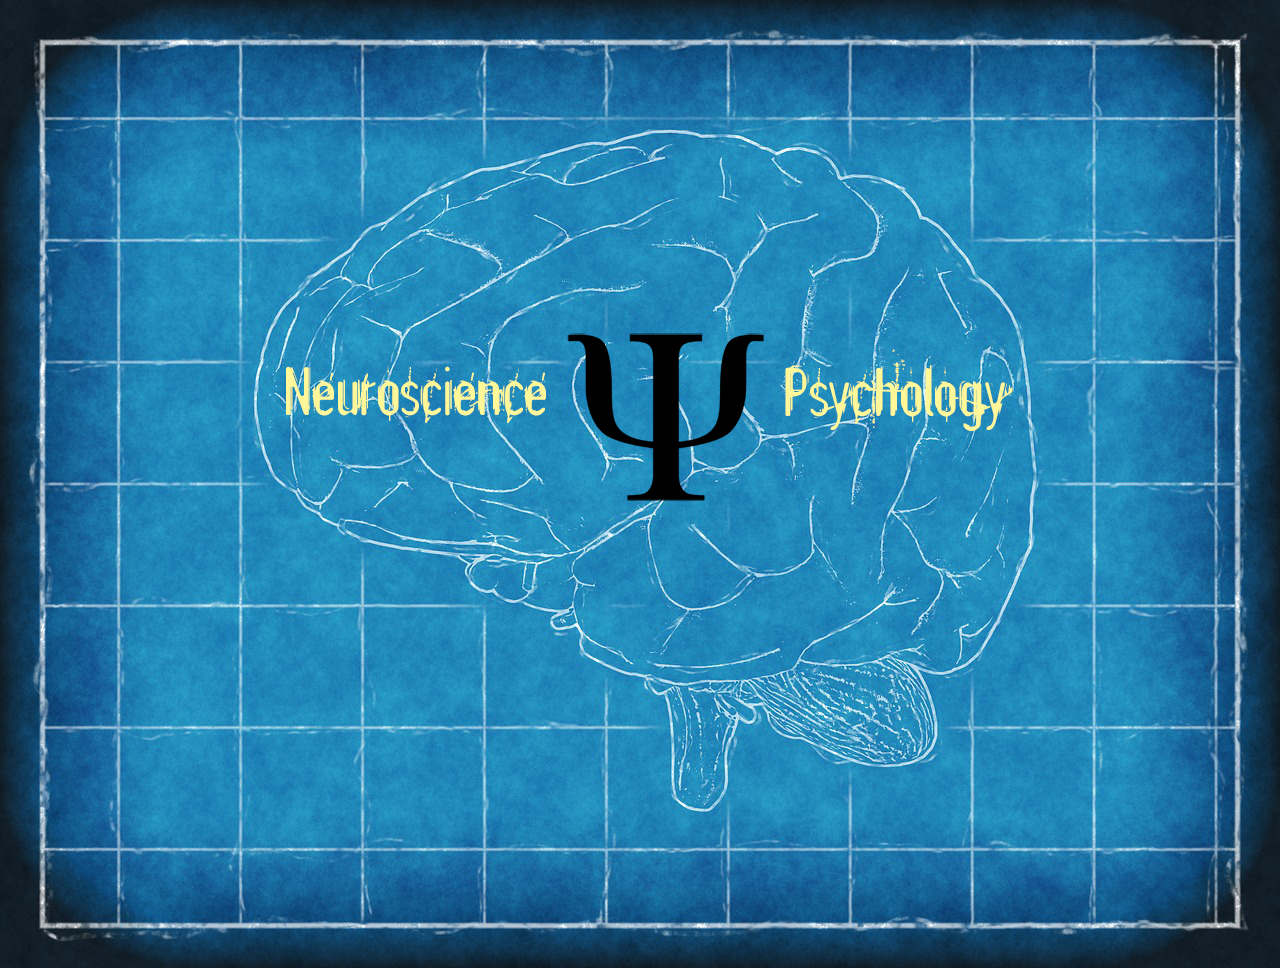 Excellent article on the role of neuroscience in psychology by Dr. Kevin Fleming.